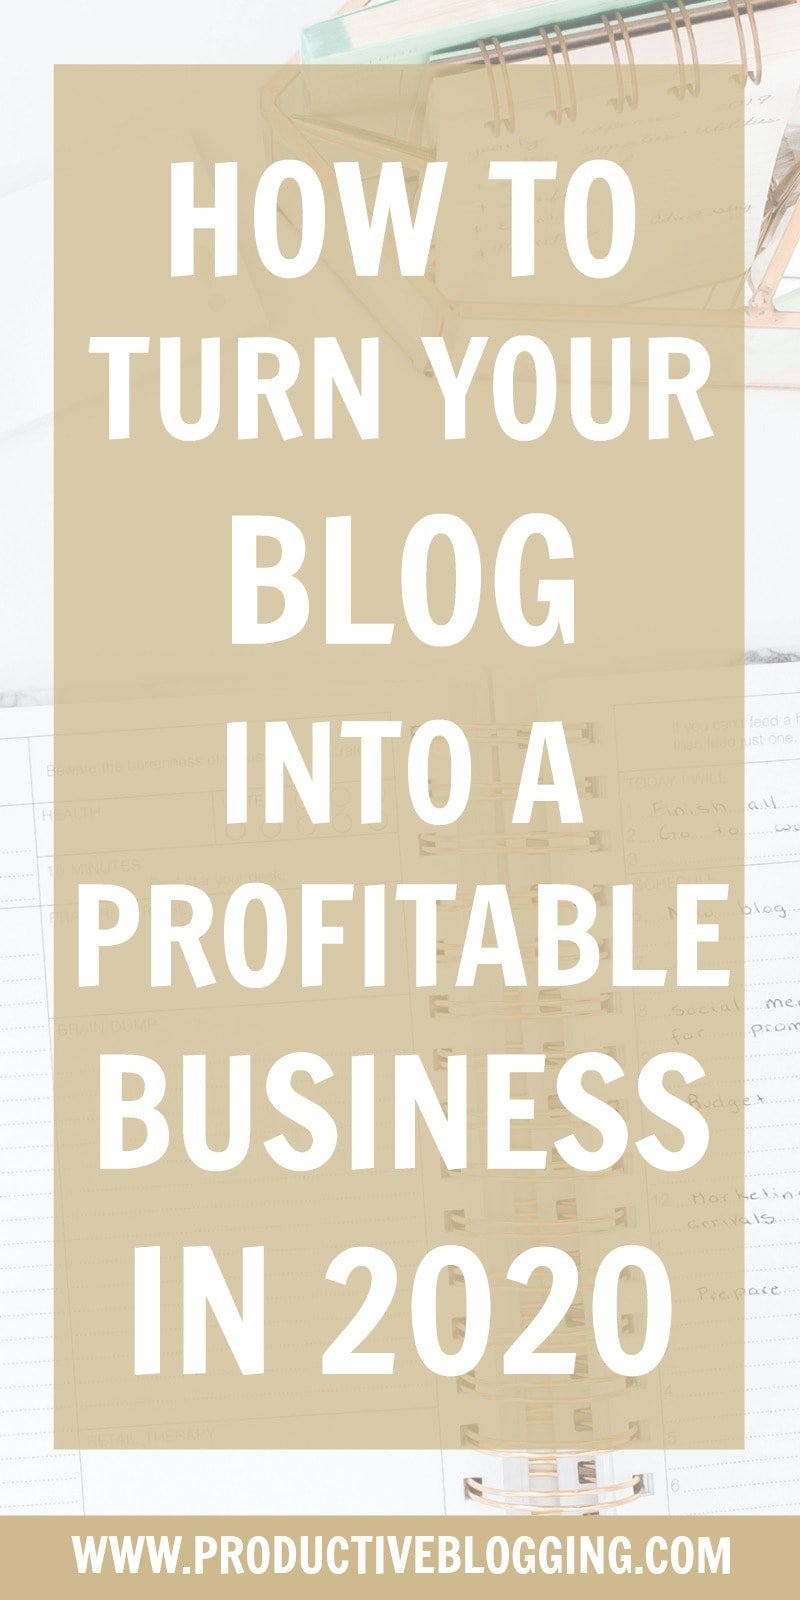 So you have a blog, but it's not making any money yet… These are the steps you need to take to turn your blog into a profitable business in 2020… #profitableblog #makemoneyblogging #blogtobiz #blogtobusiness #blogtoprofit #bloggingforprofit #profitableblogging #successfulblogging #bloggingprofits #bloggingsuccess #blog #bloggers #blogging #solopreneur #smallbiz #bloggersofIG #productiveblogging